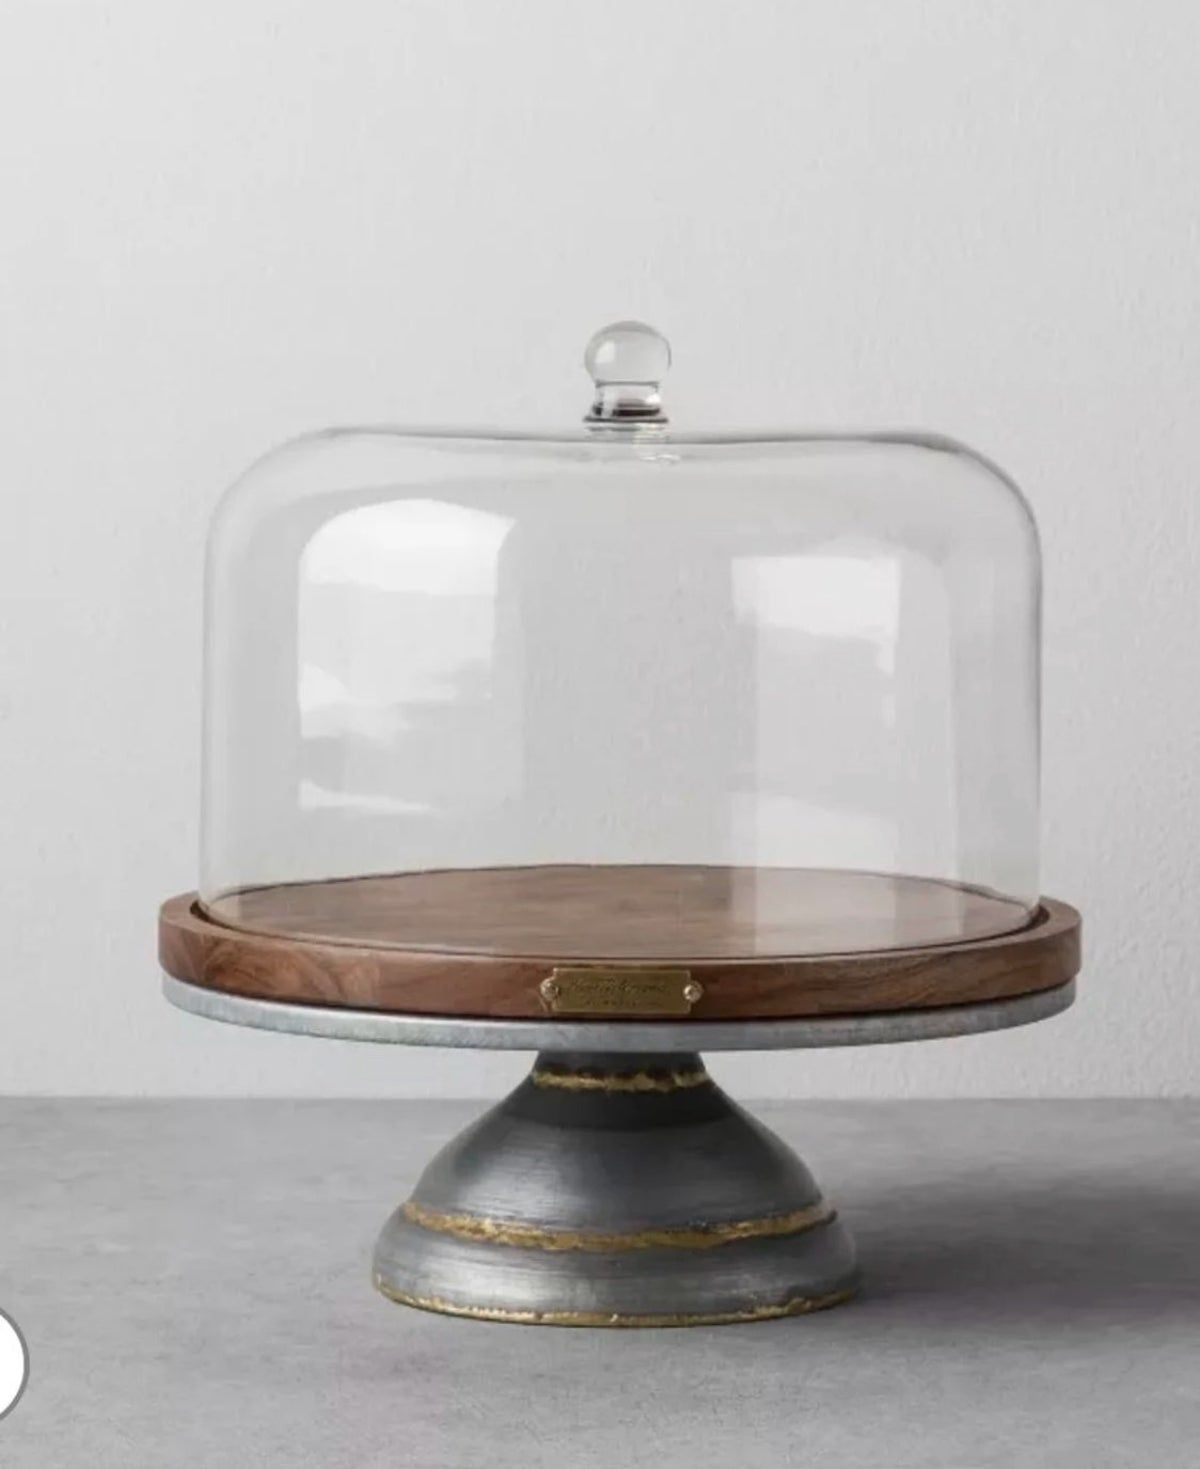 Glass cake stand for my cupcakes in 2020 glass cake